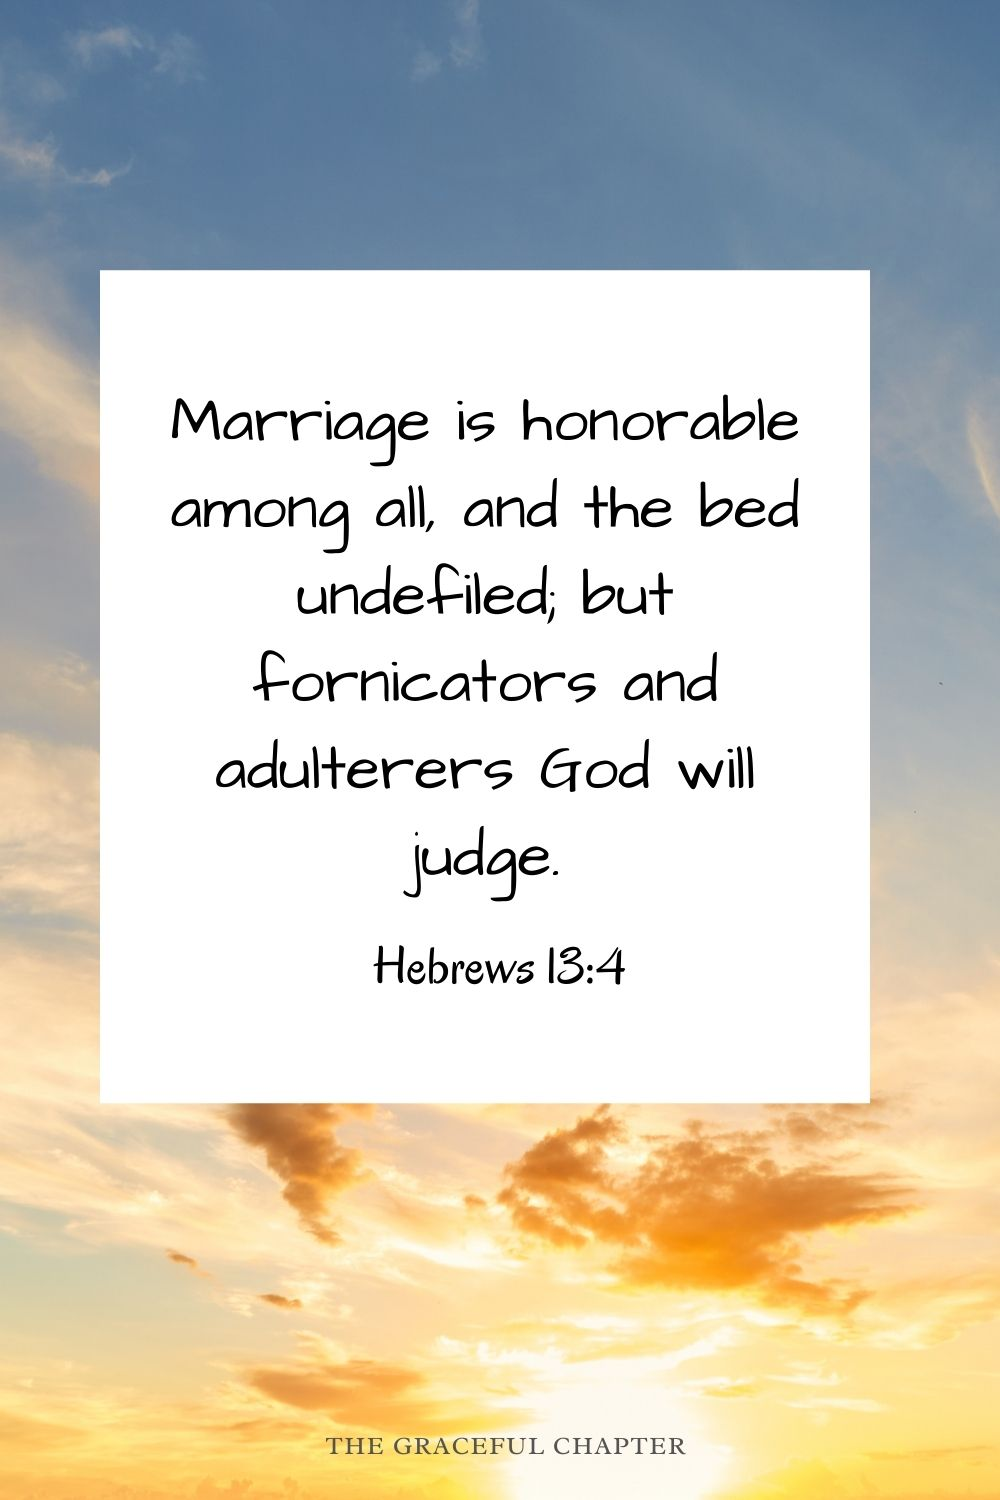 Marriage is honorable among all, and the bed undefiled; but fornicators and adulterers God will judge. Hebrews 13:4